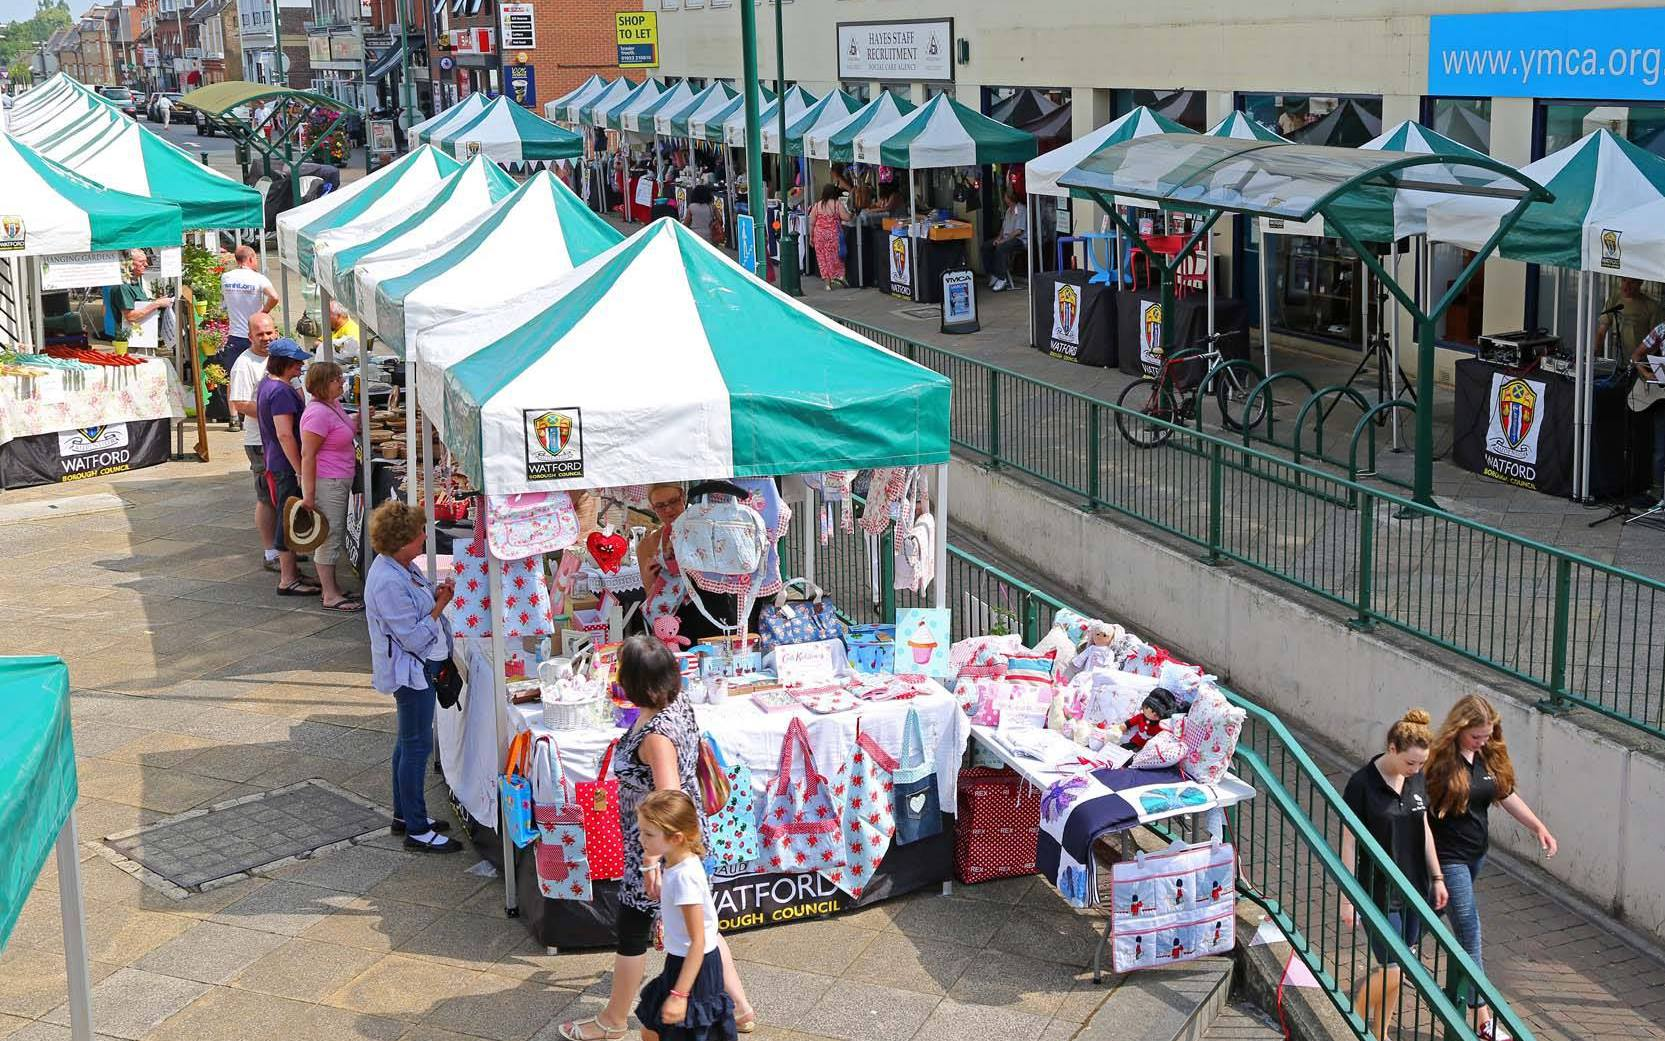 Queens Road Summer Market to start again